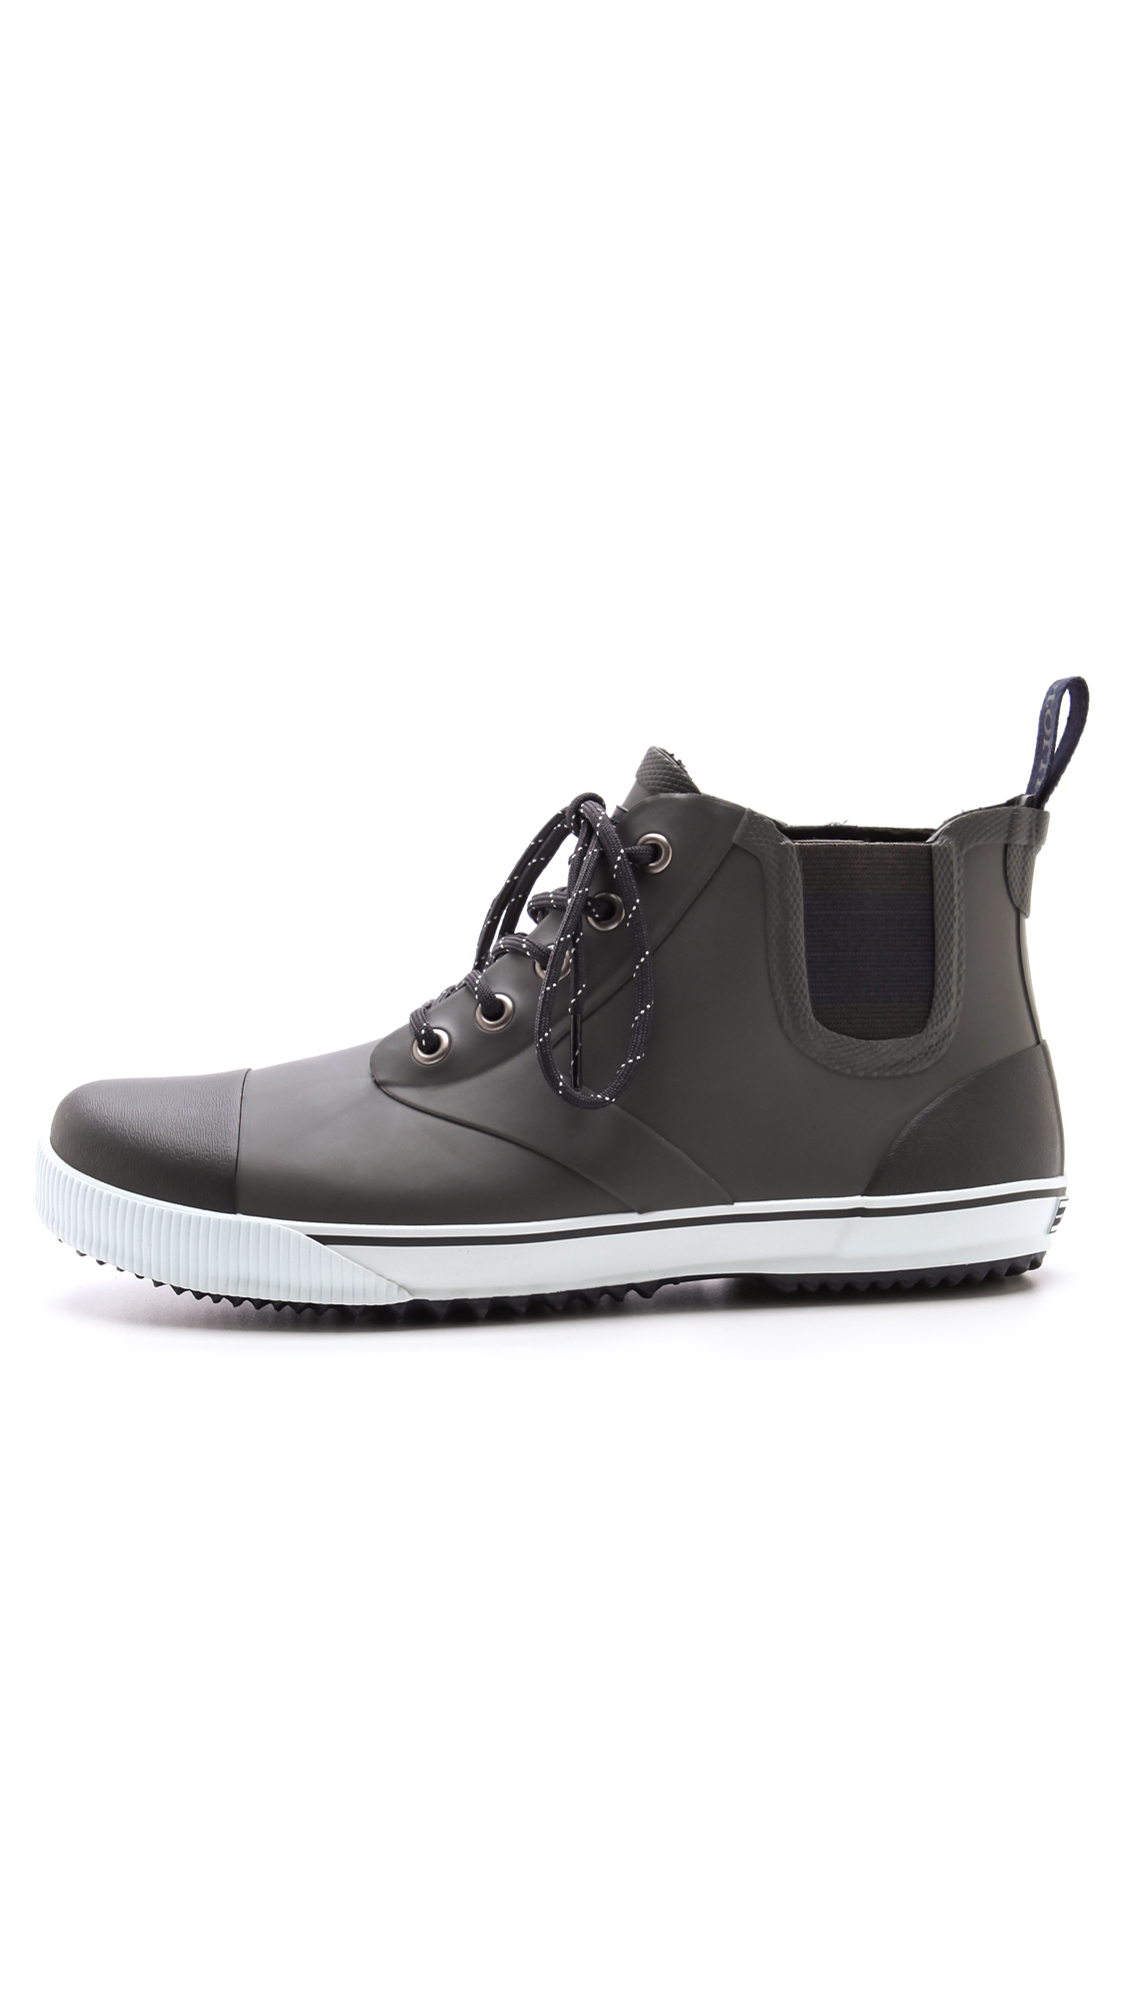 Lyst Tretorn Gunnar Lace Up Boots In Metallic For Men